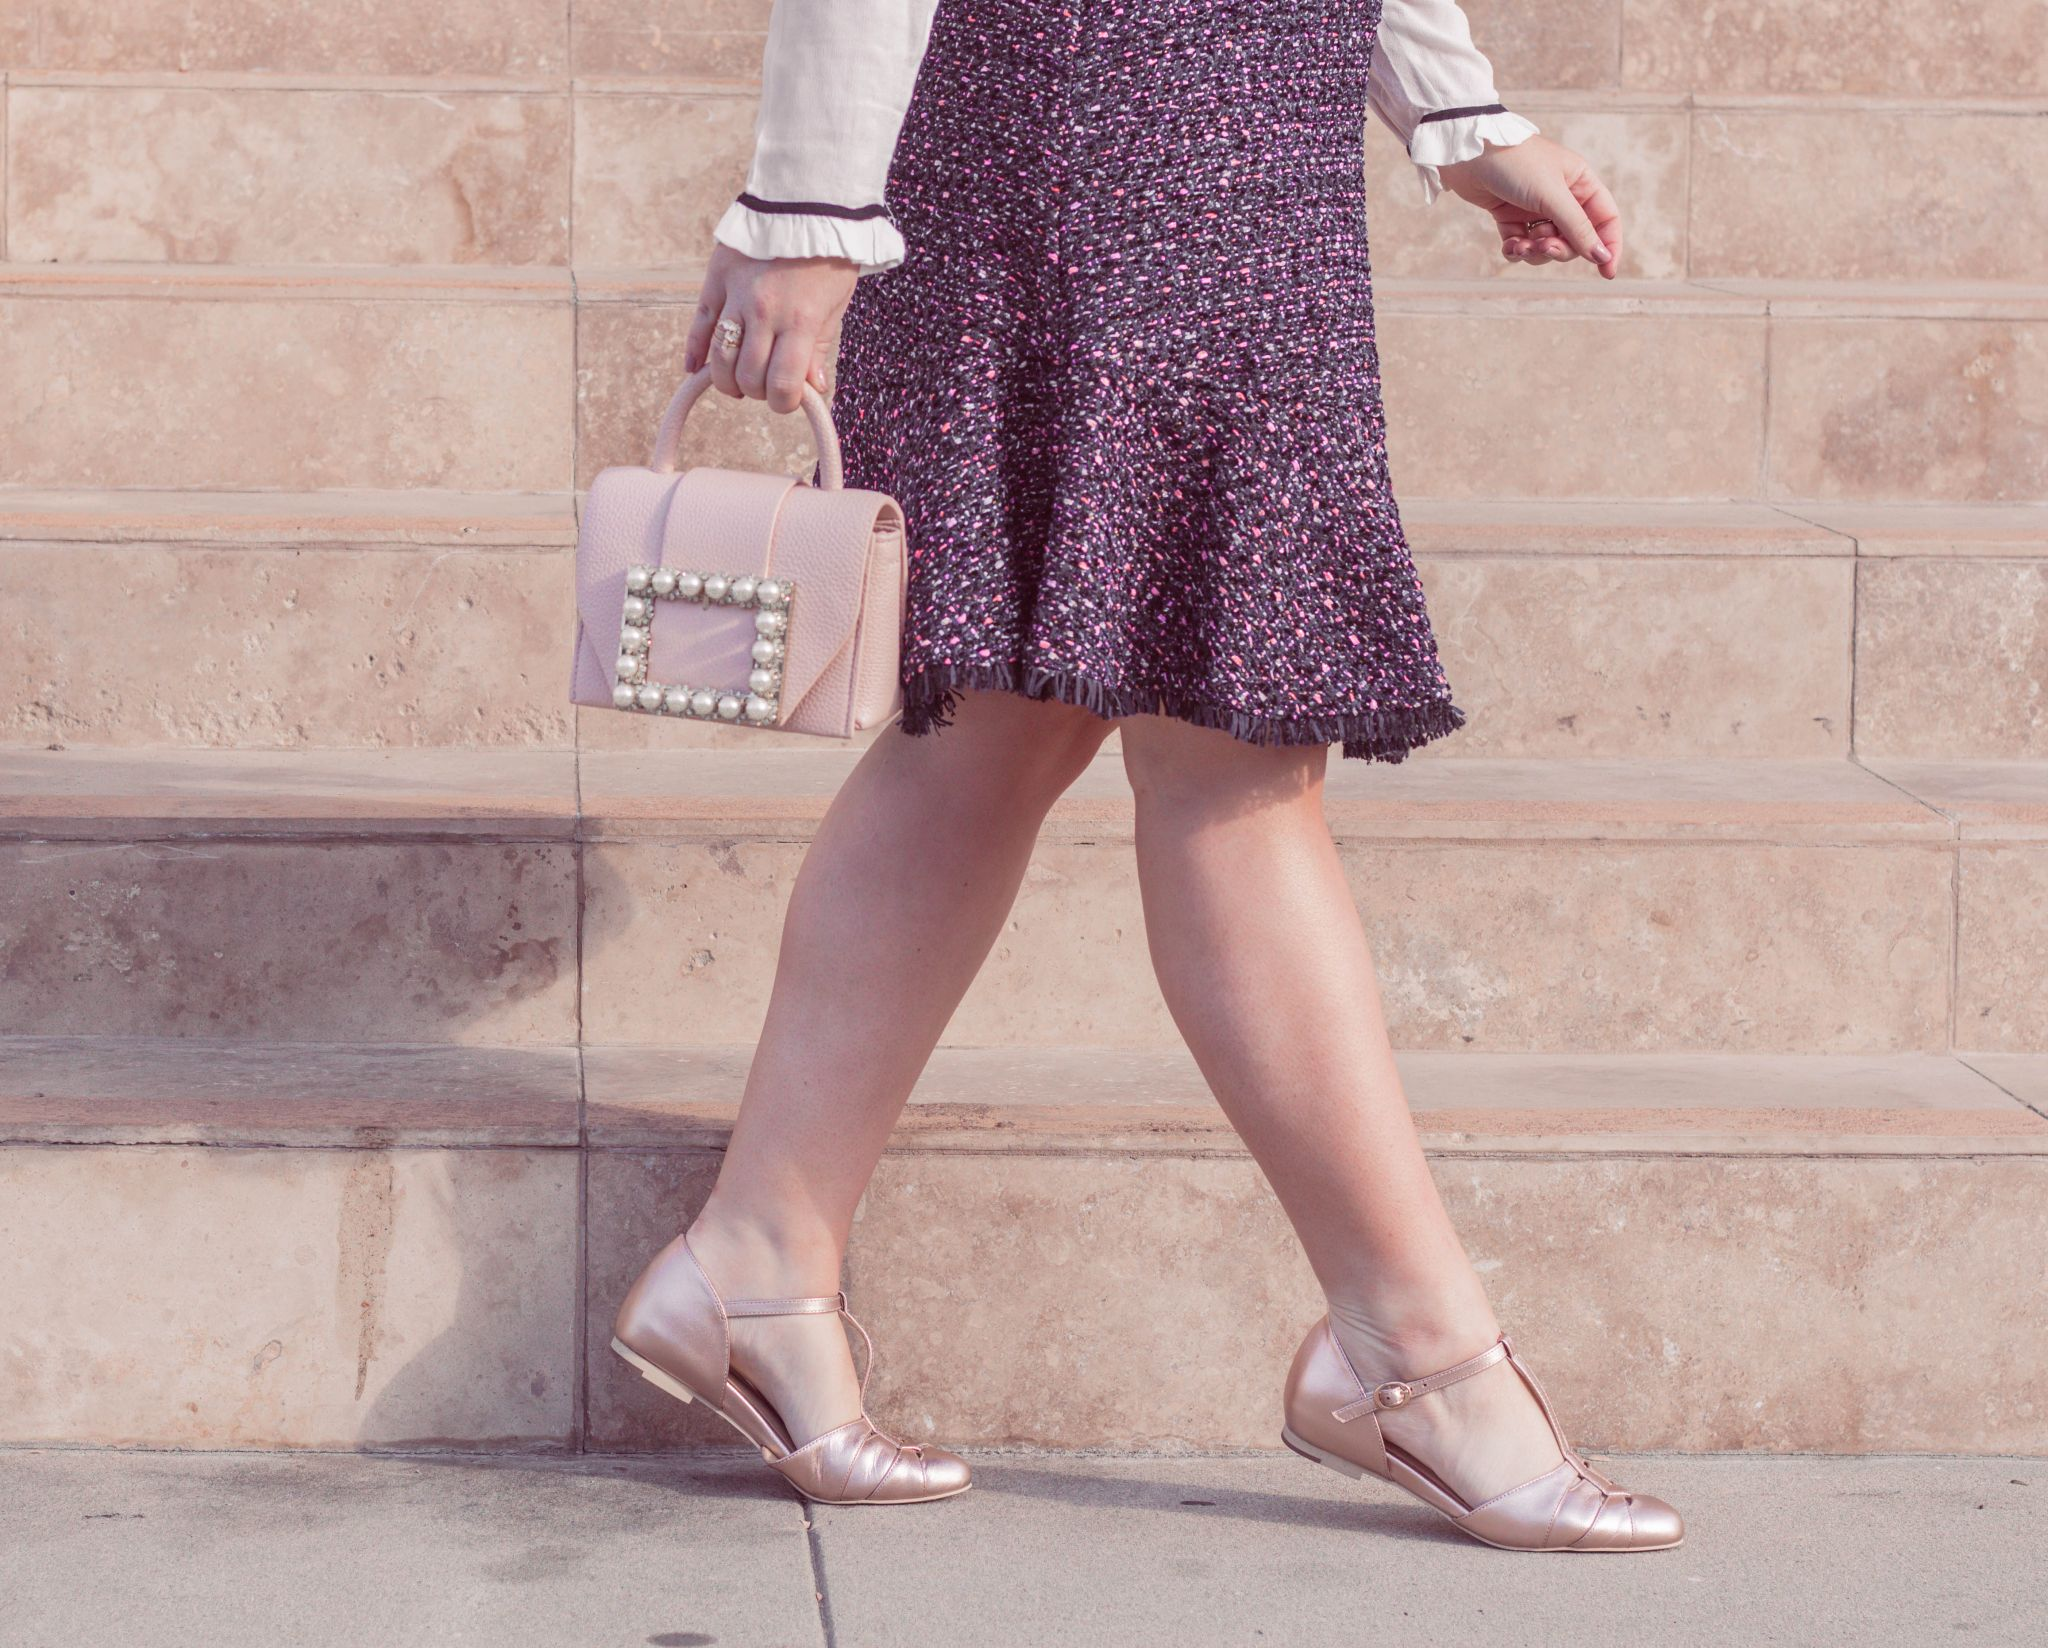 Elizabeth Hugen of Lizzie in Lace shares her girly shoe collection including these vintage style flats